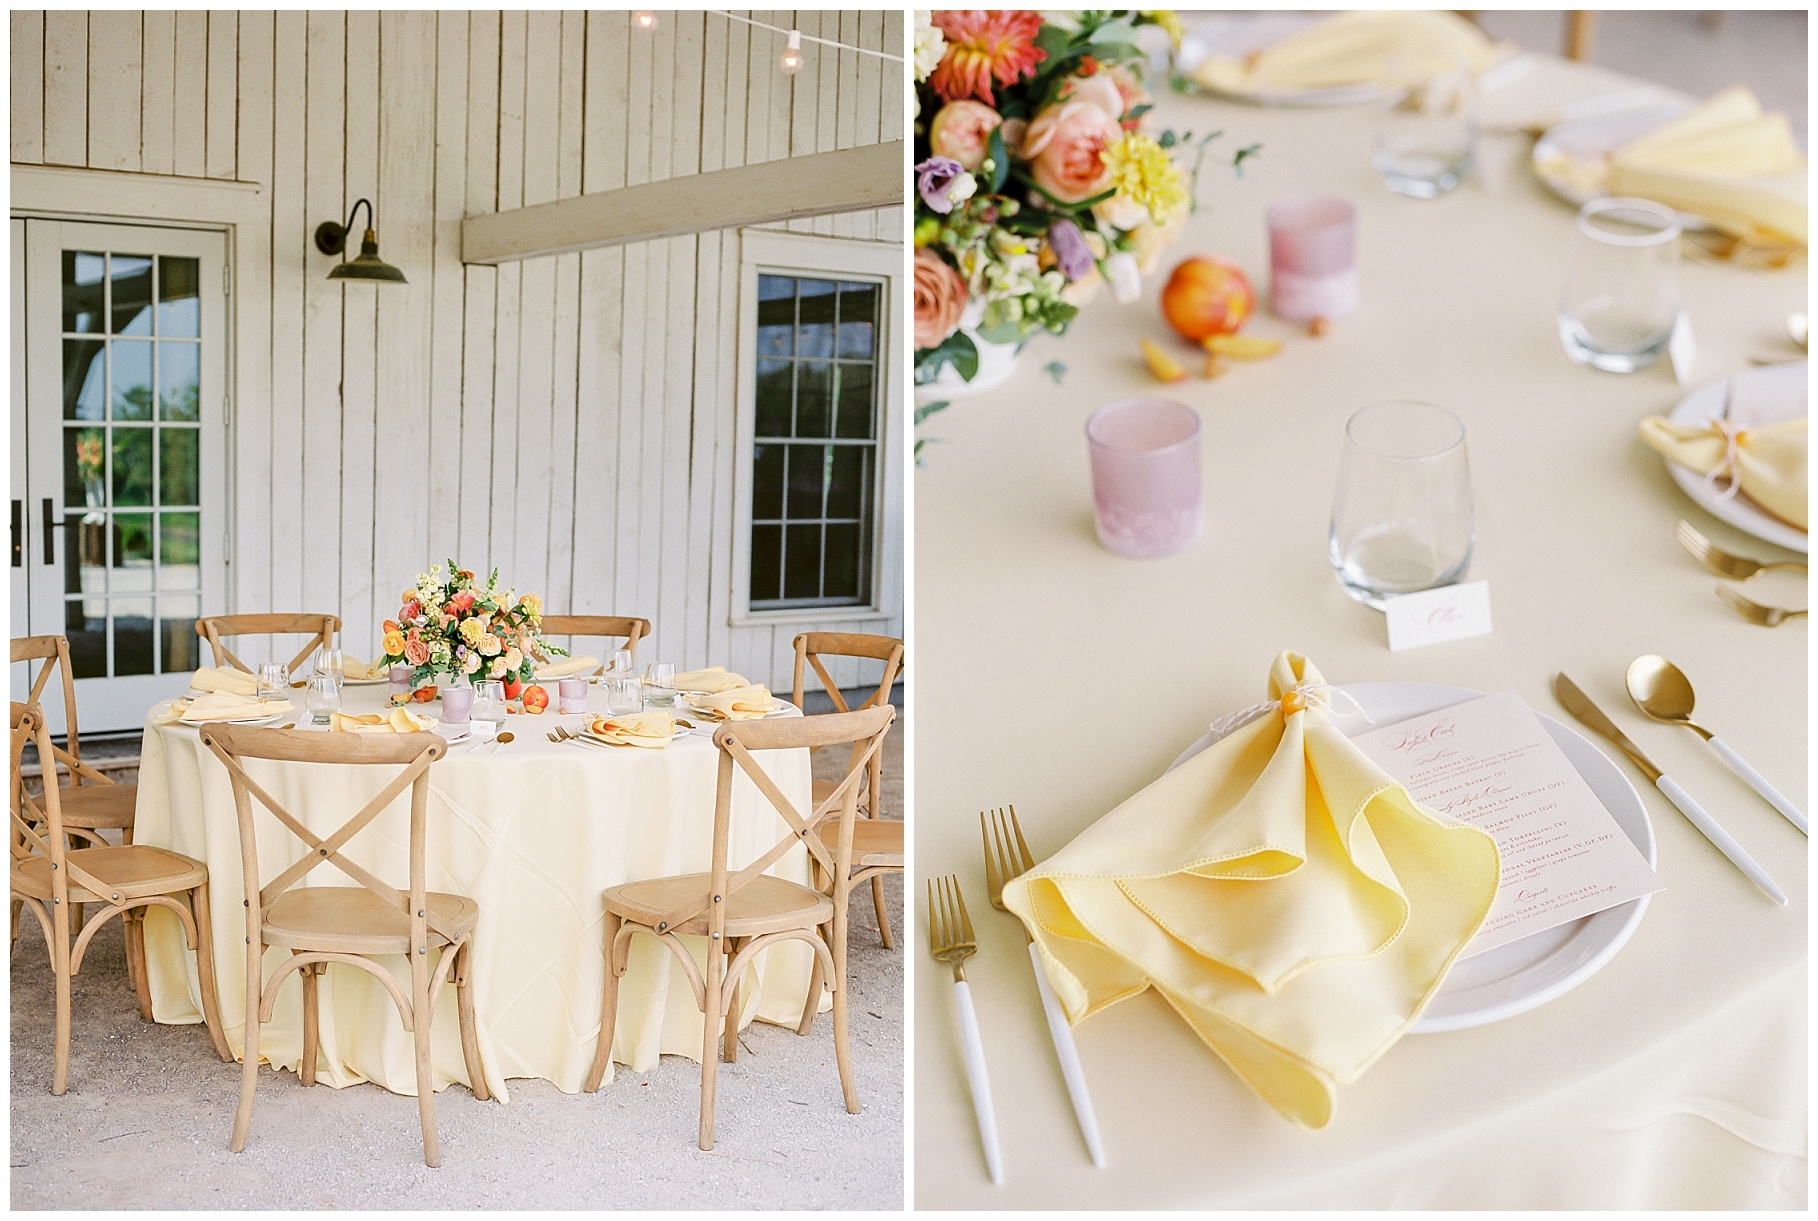 Late Summer Wedding With Pastel Toned Soiree at Blue Bell Farm by Kelsi Kliethermes Photography Best Columbia Missouri Wedding Photographer_0070.jpg